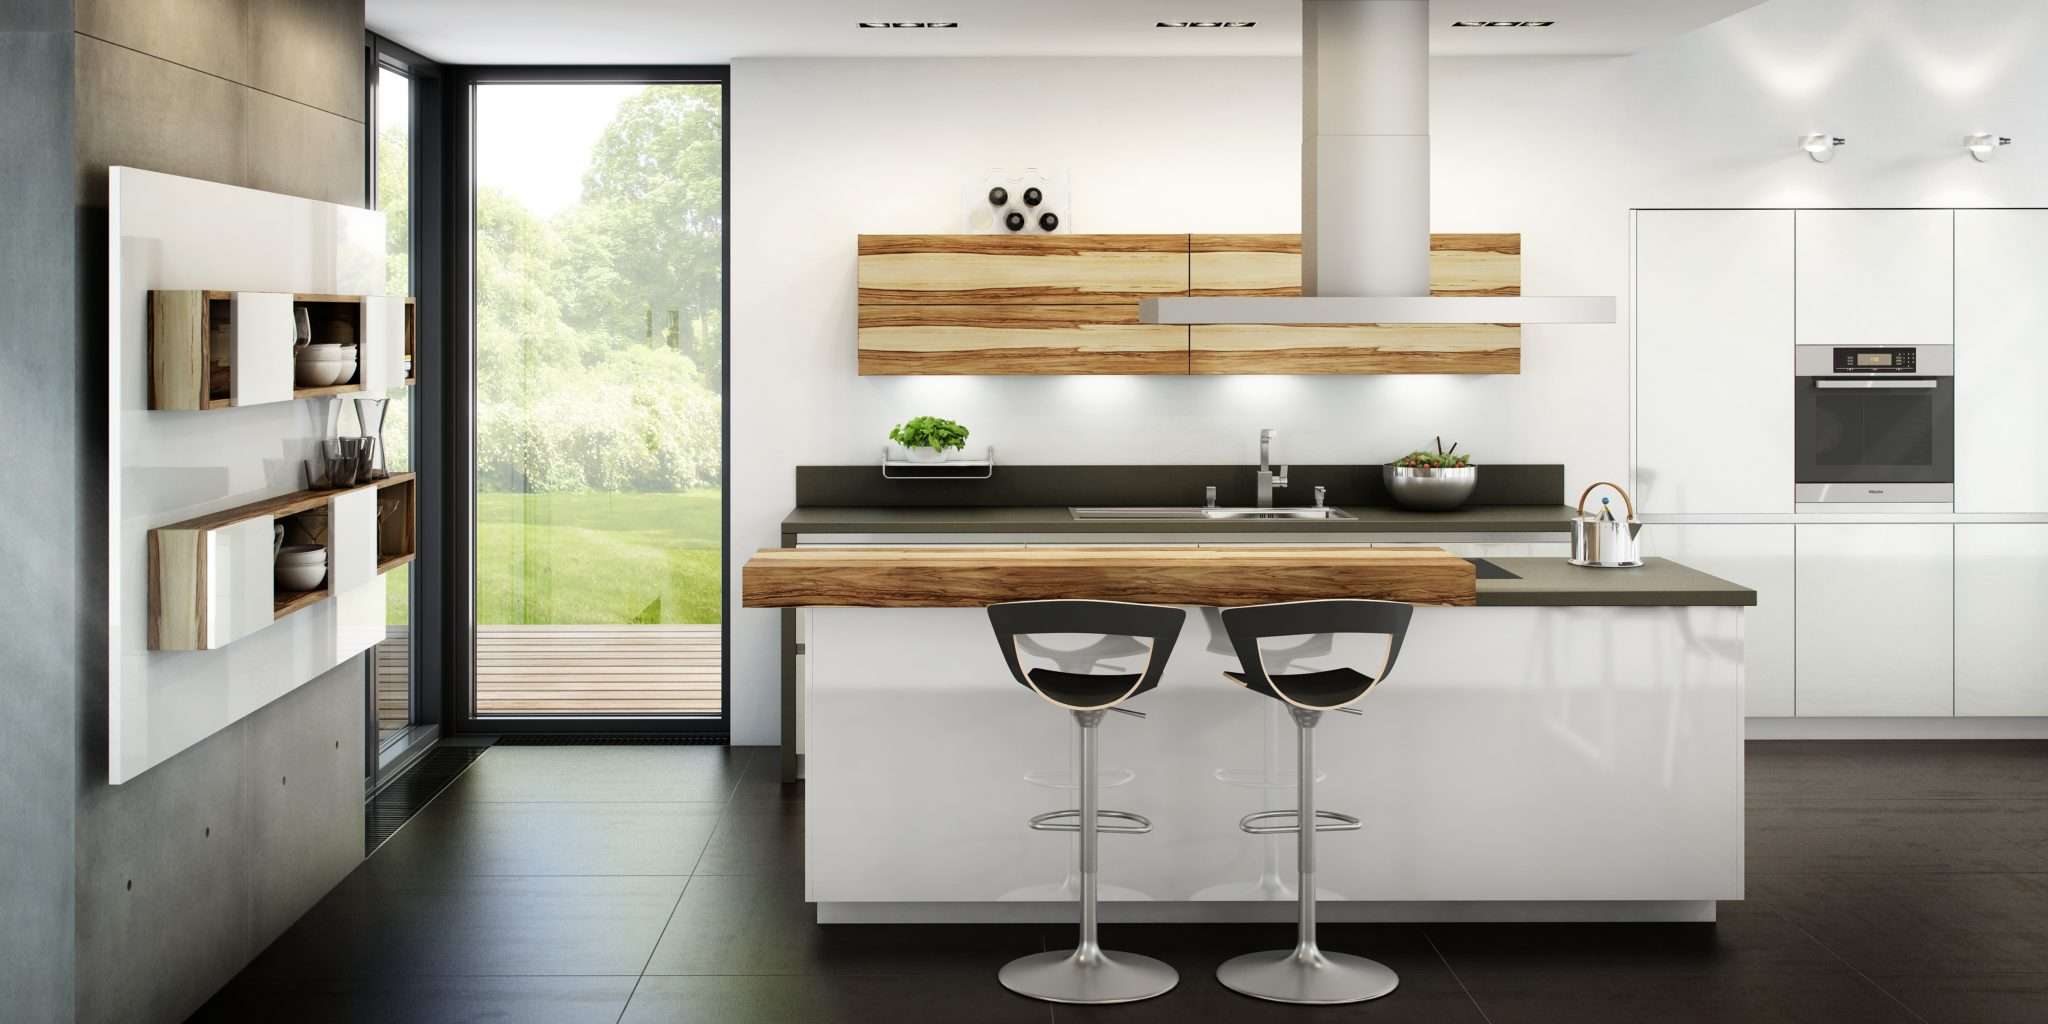 German Kitchen Cabinets Manufacturers German Kitchen Design Think Kitchens Northallerton